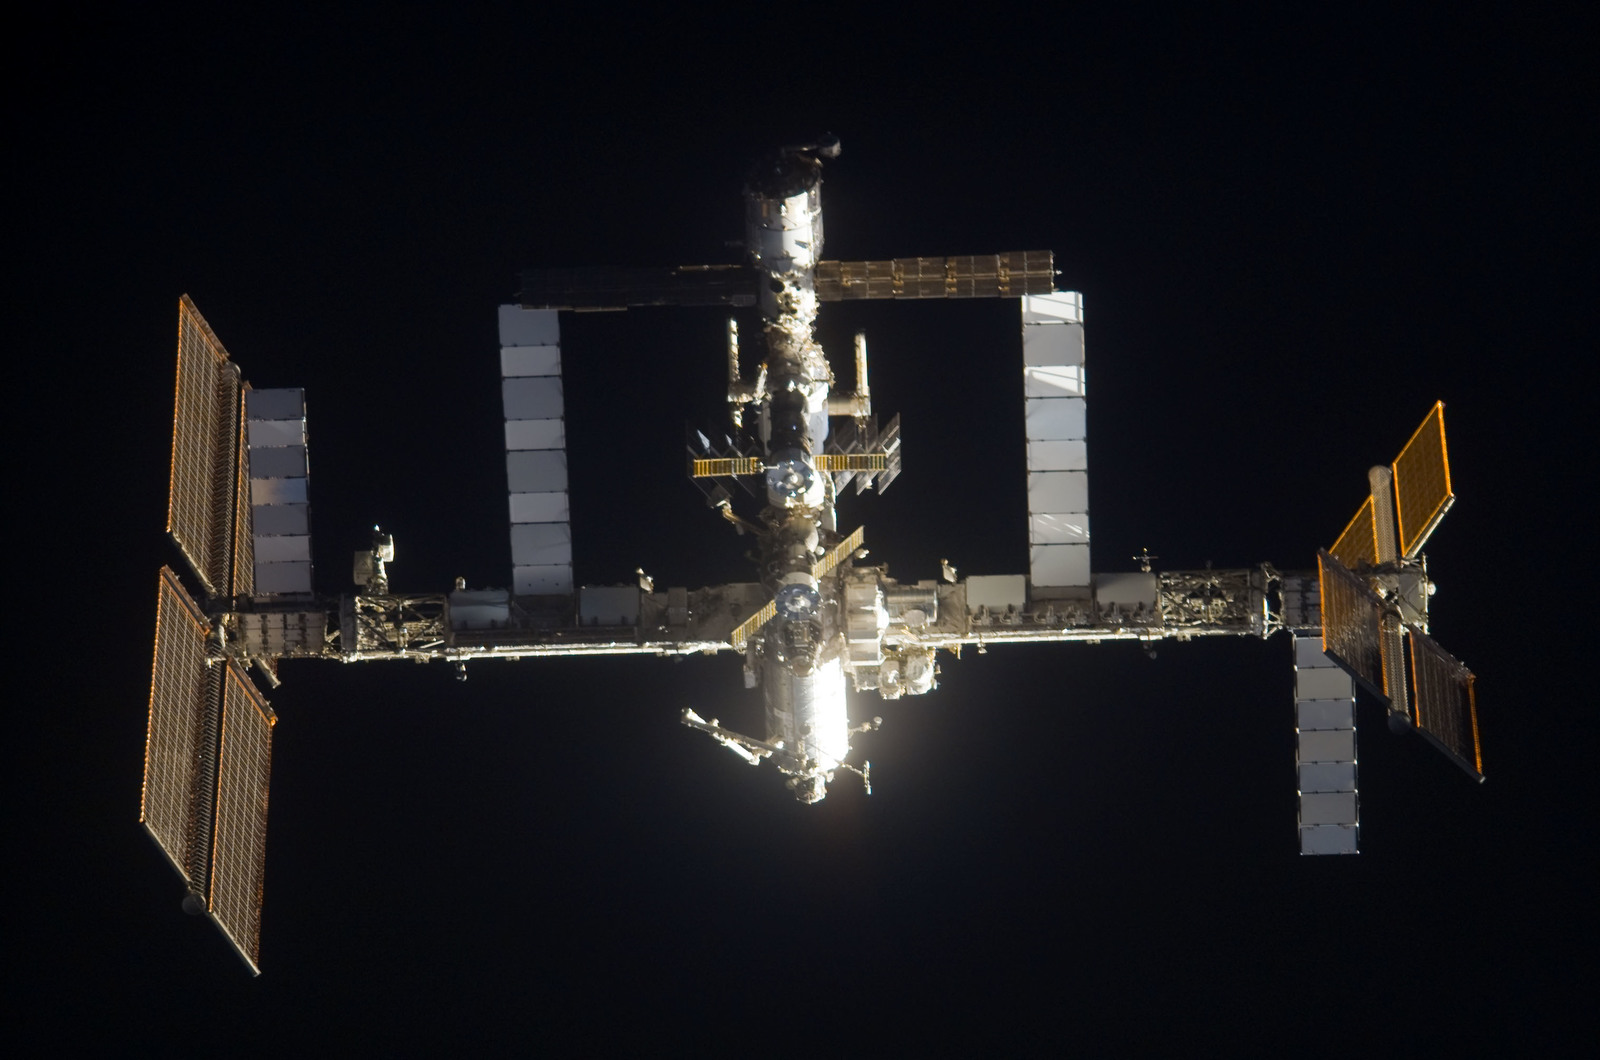 S120E006252 - STS-120 - View of ISS taken during the STS-120 Approach